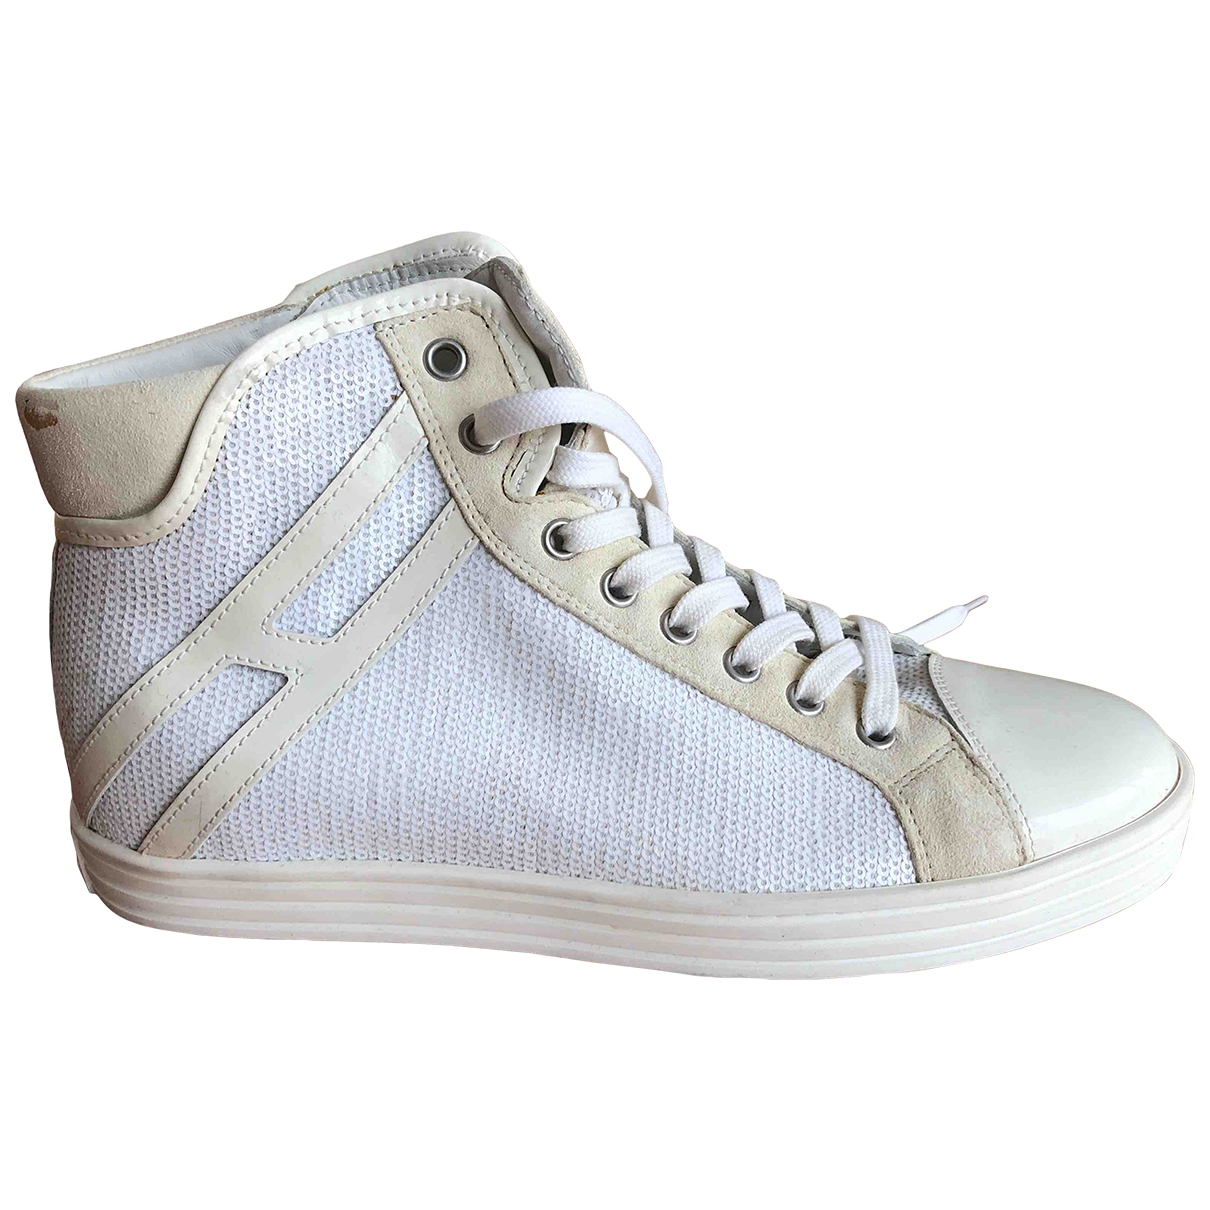 Hogan \N Sneakers in  Weiss Leder